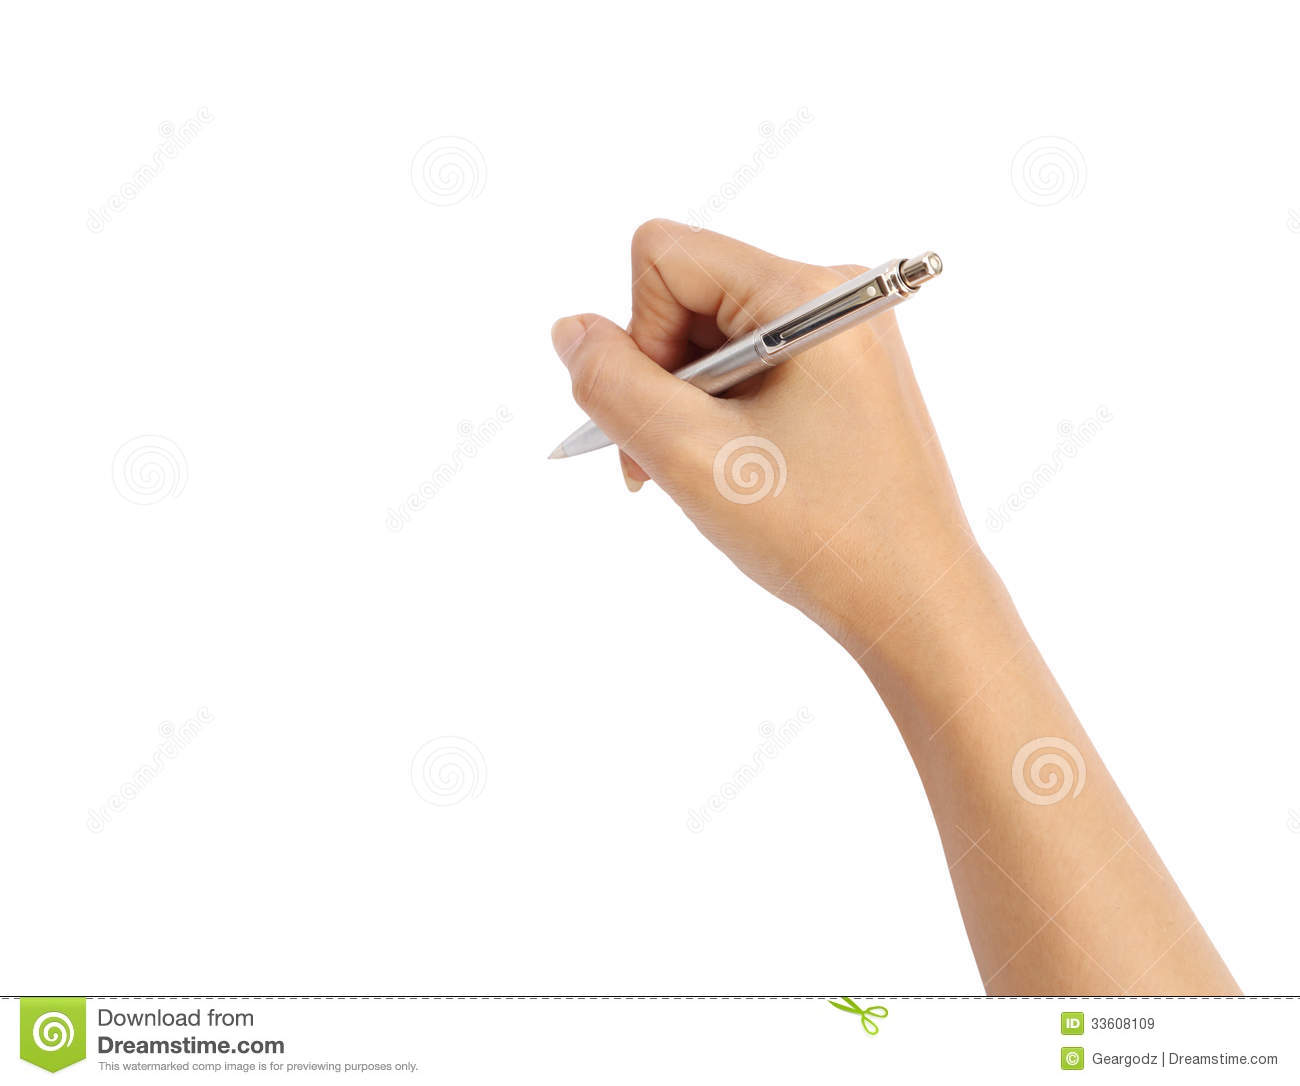 hand with pen writing on white background royalty free handshake clipart common handshake clipart black & white man